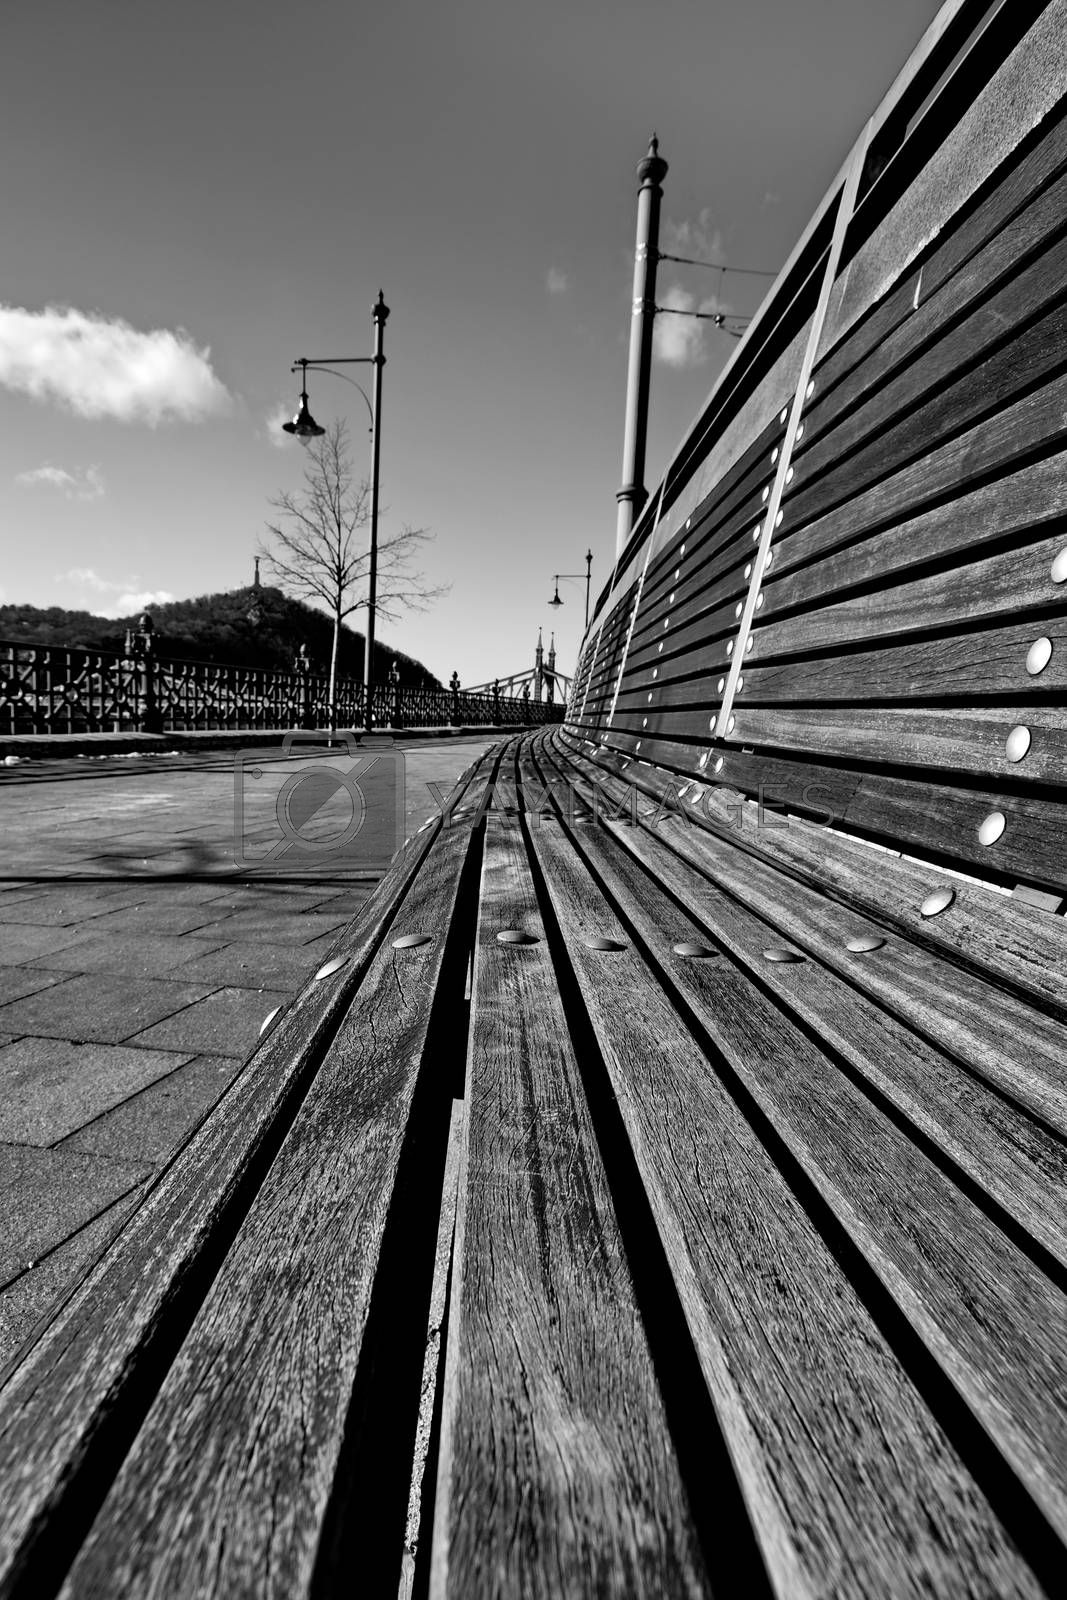 Empty bench in the city